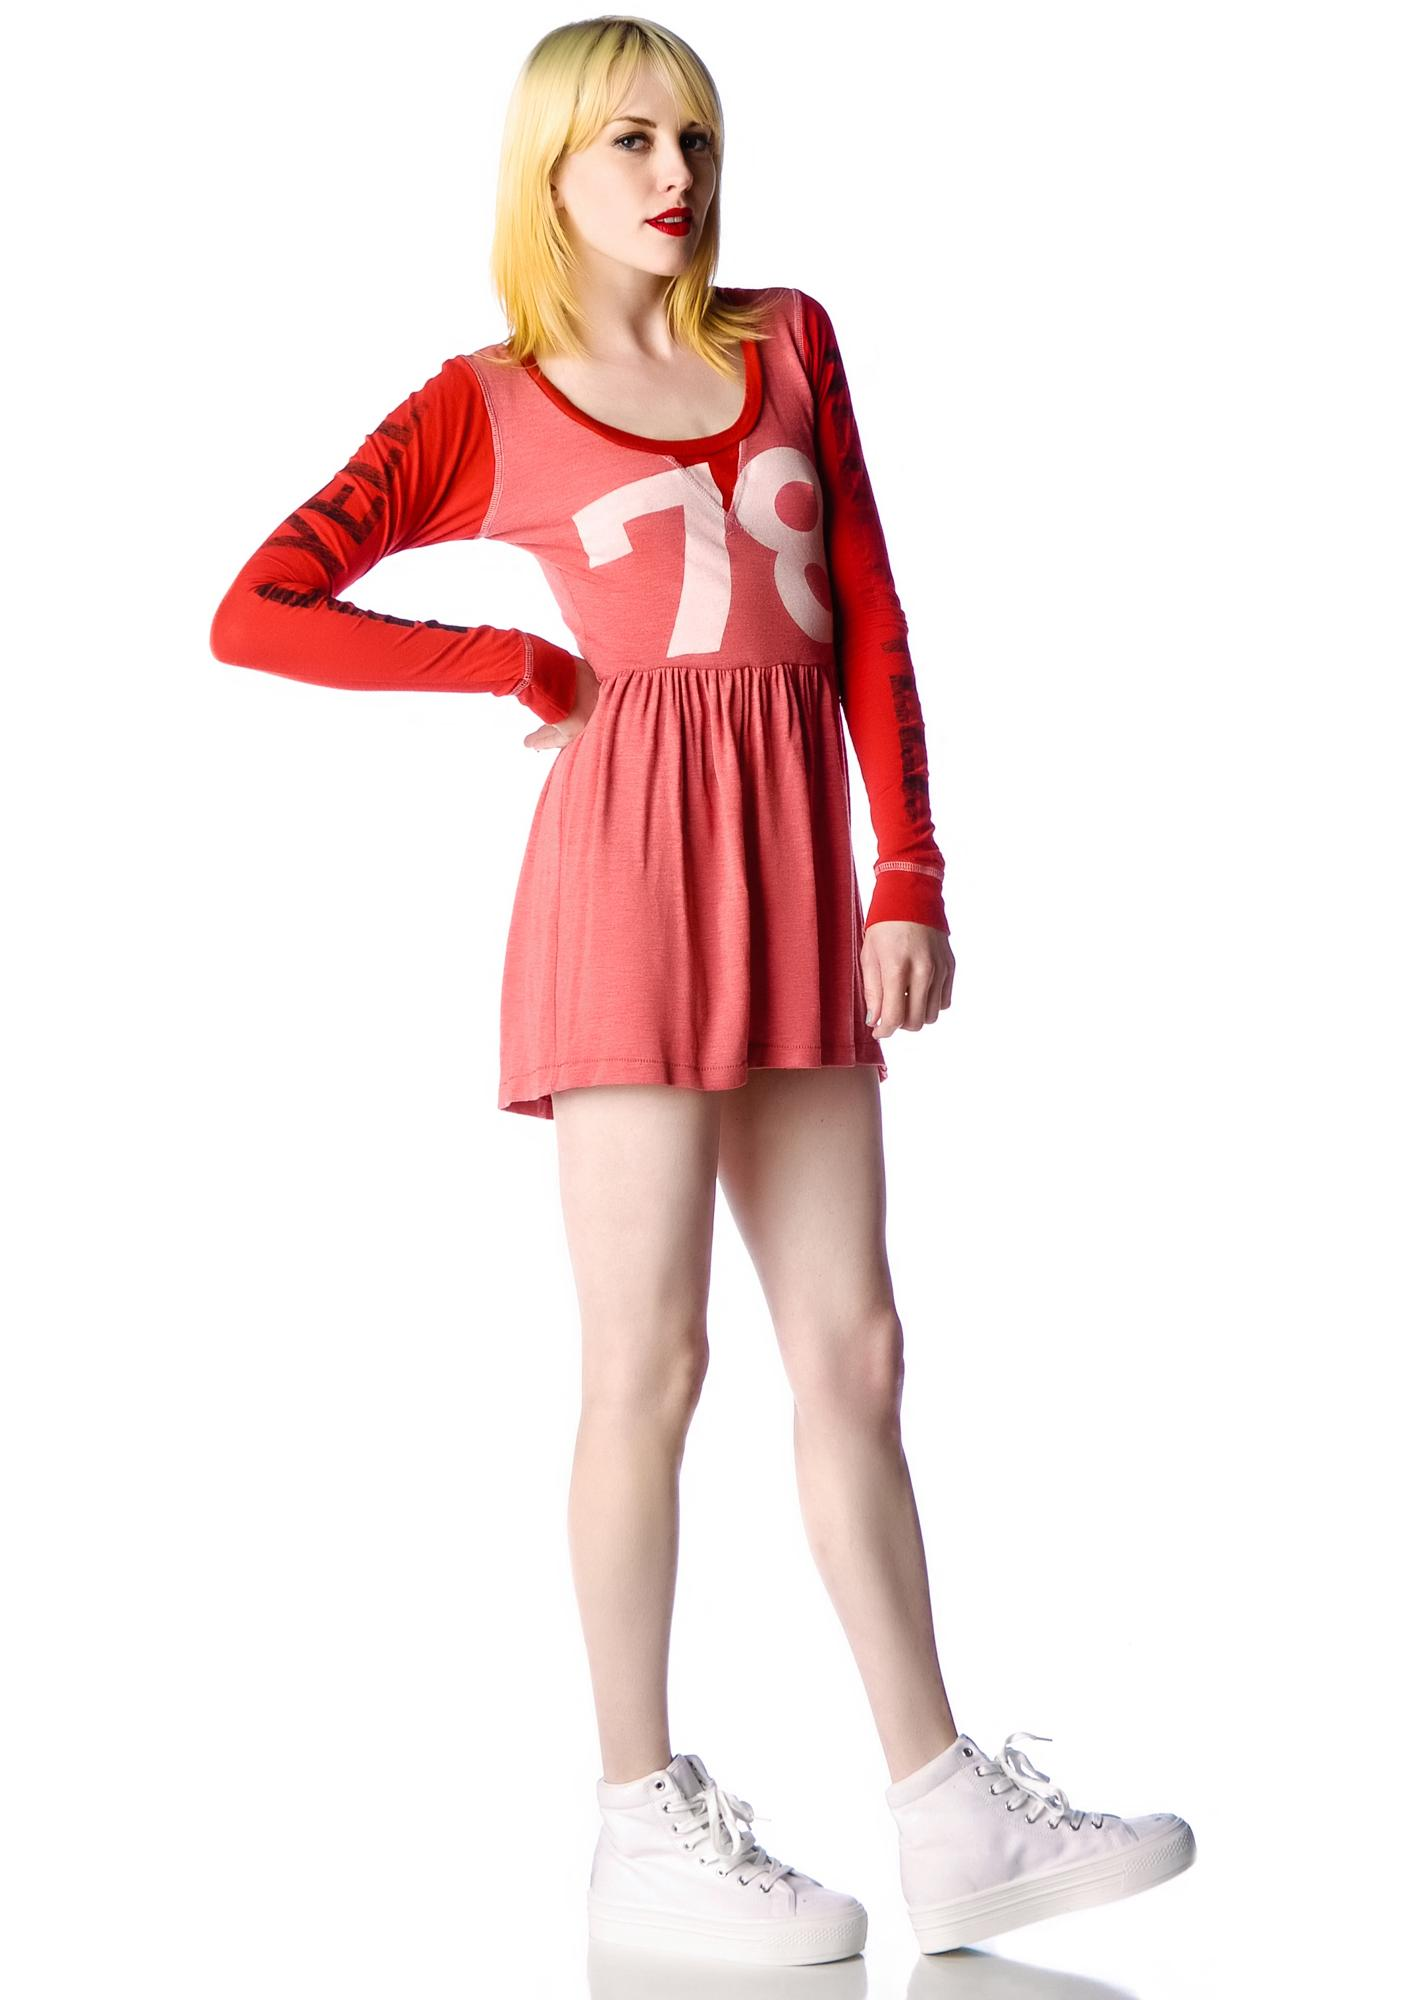 Rebel Yell 78 Babydoll Mini Dress